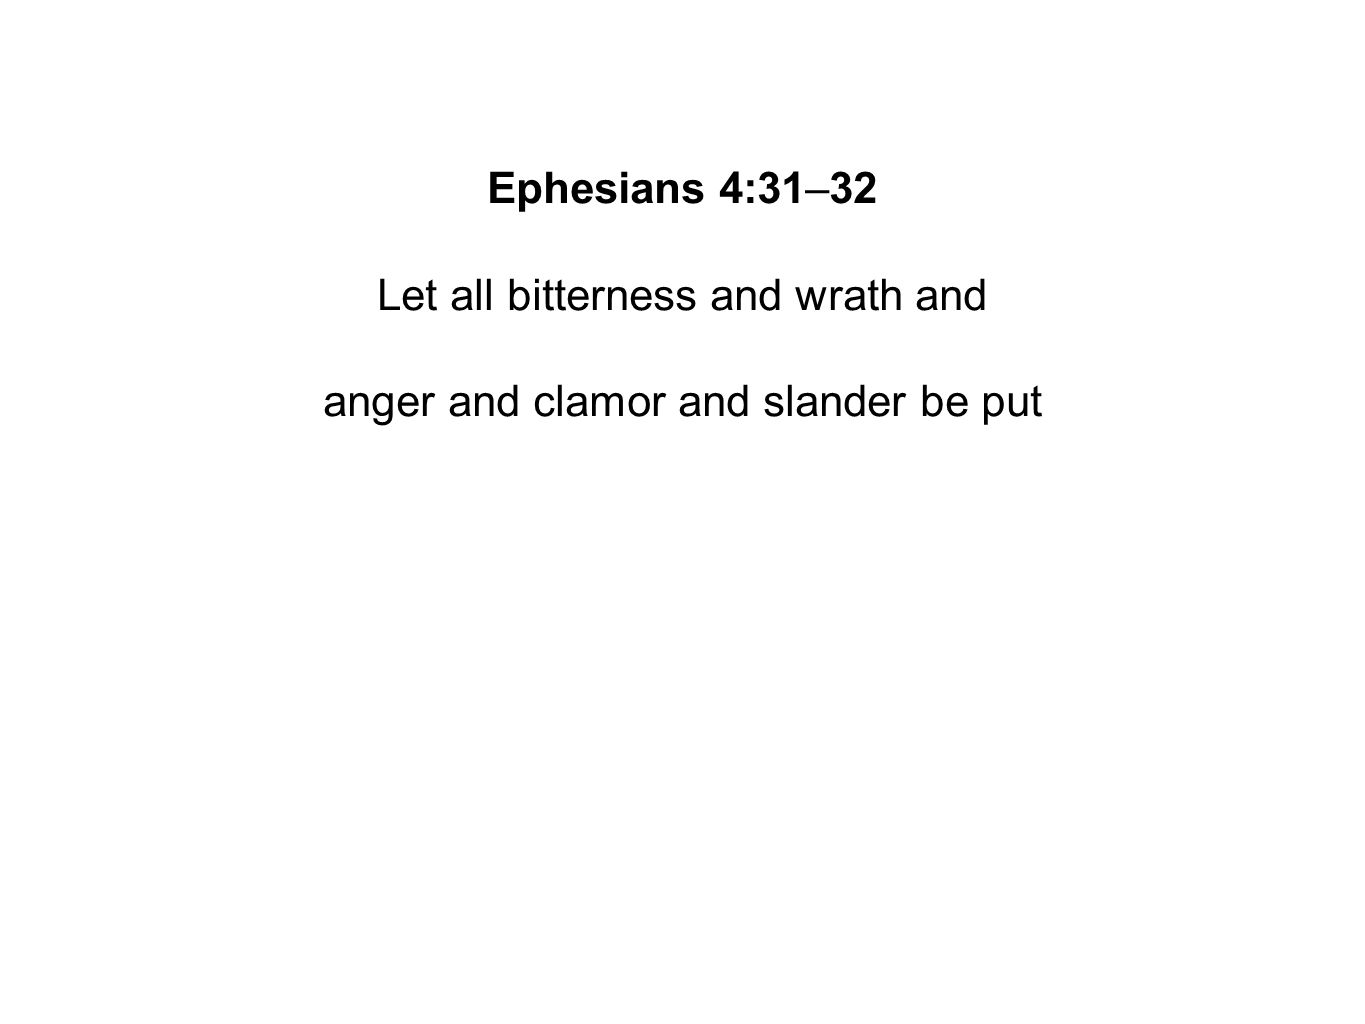 Ephesians 4:31–32 Let all bitterness and wrath and anger and clamor and slander be put